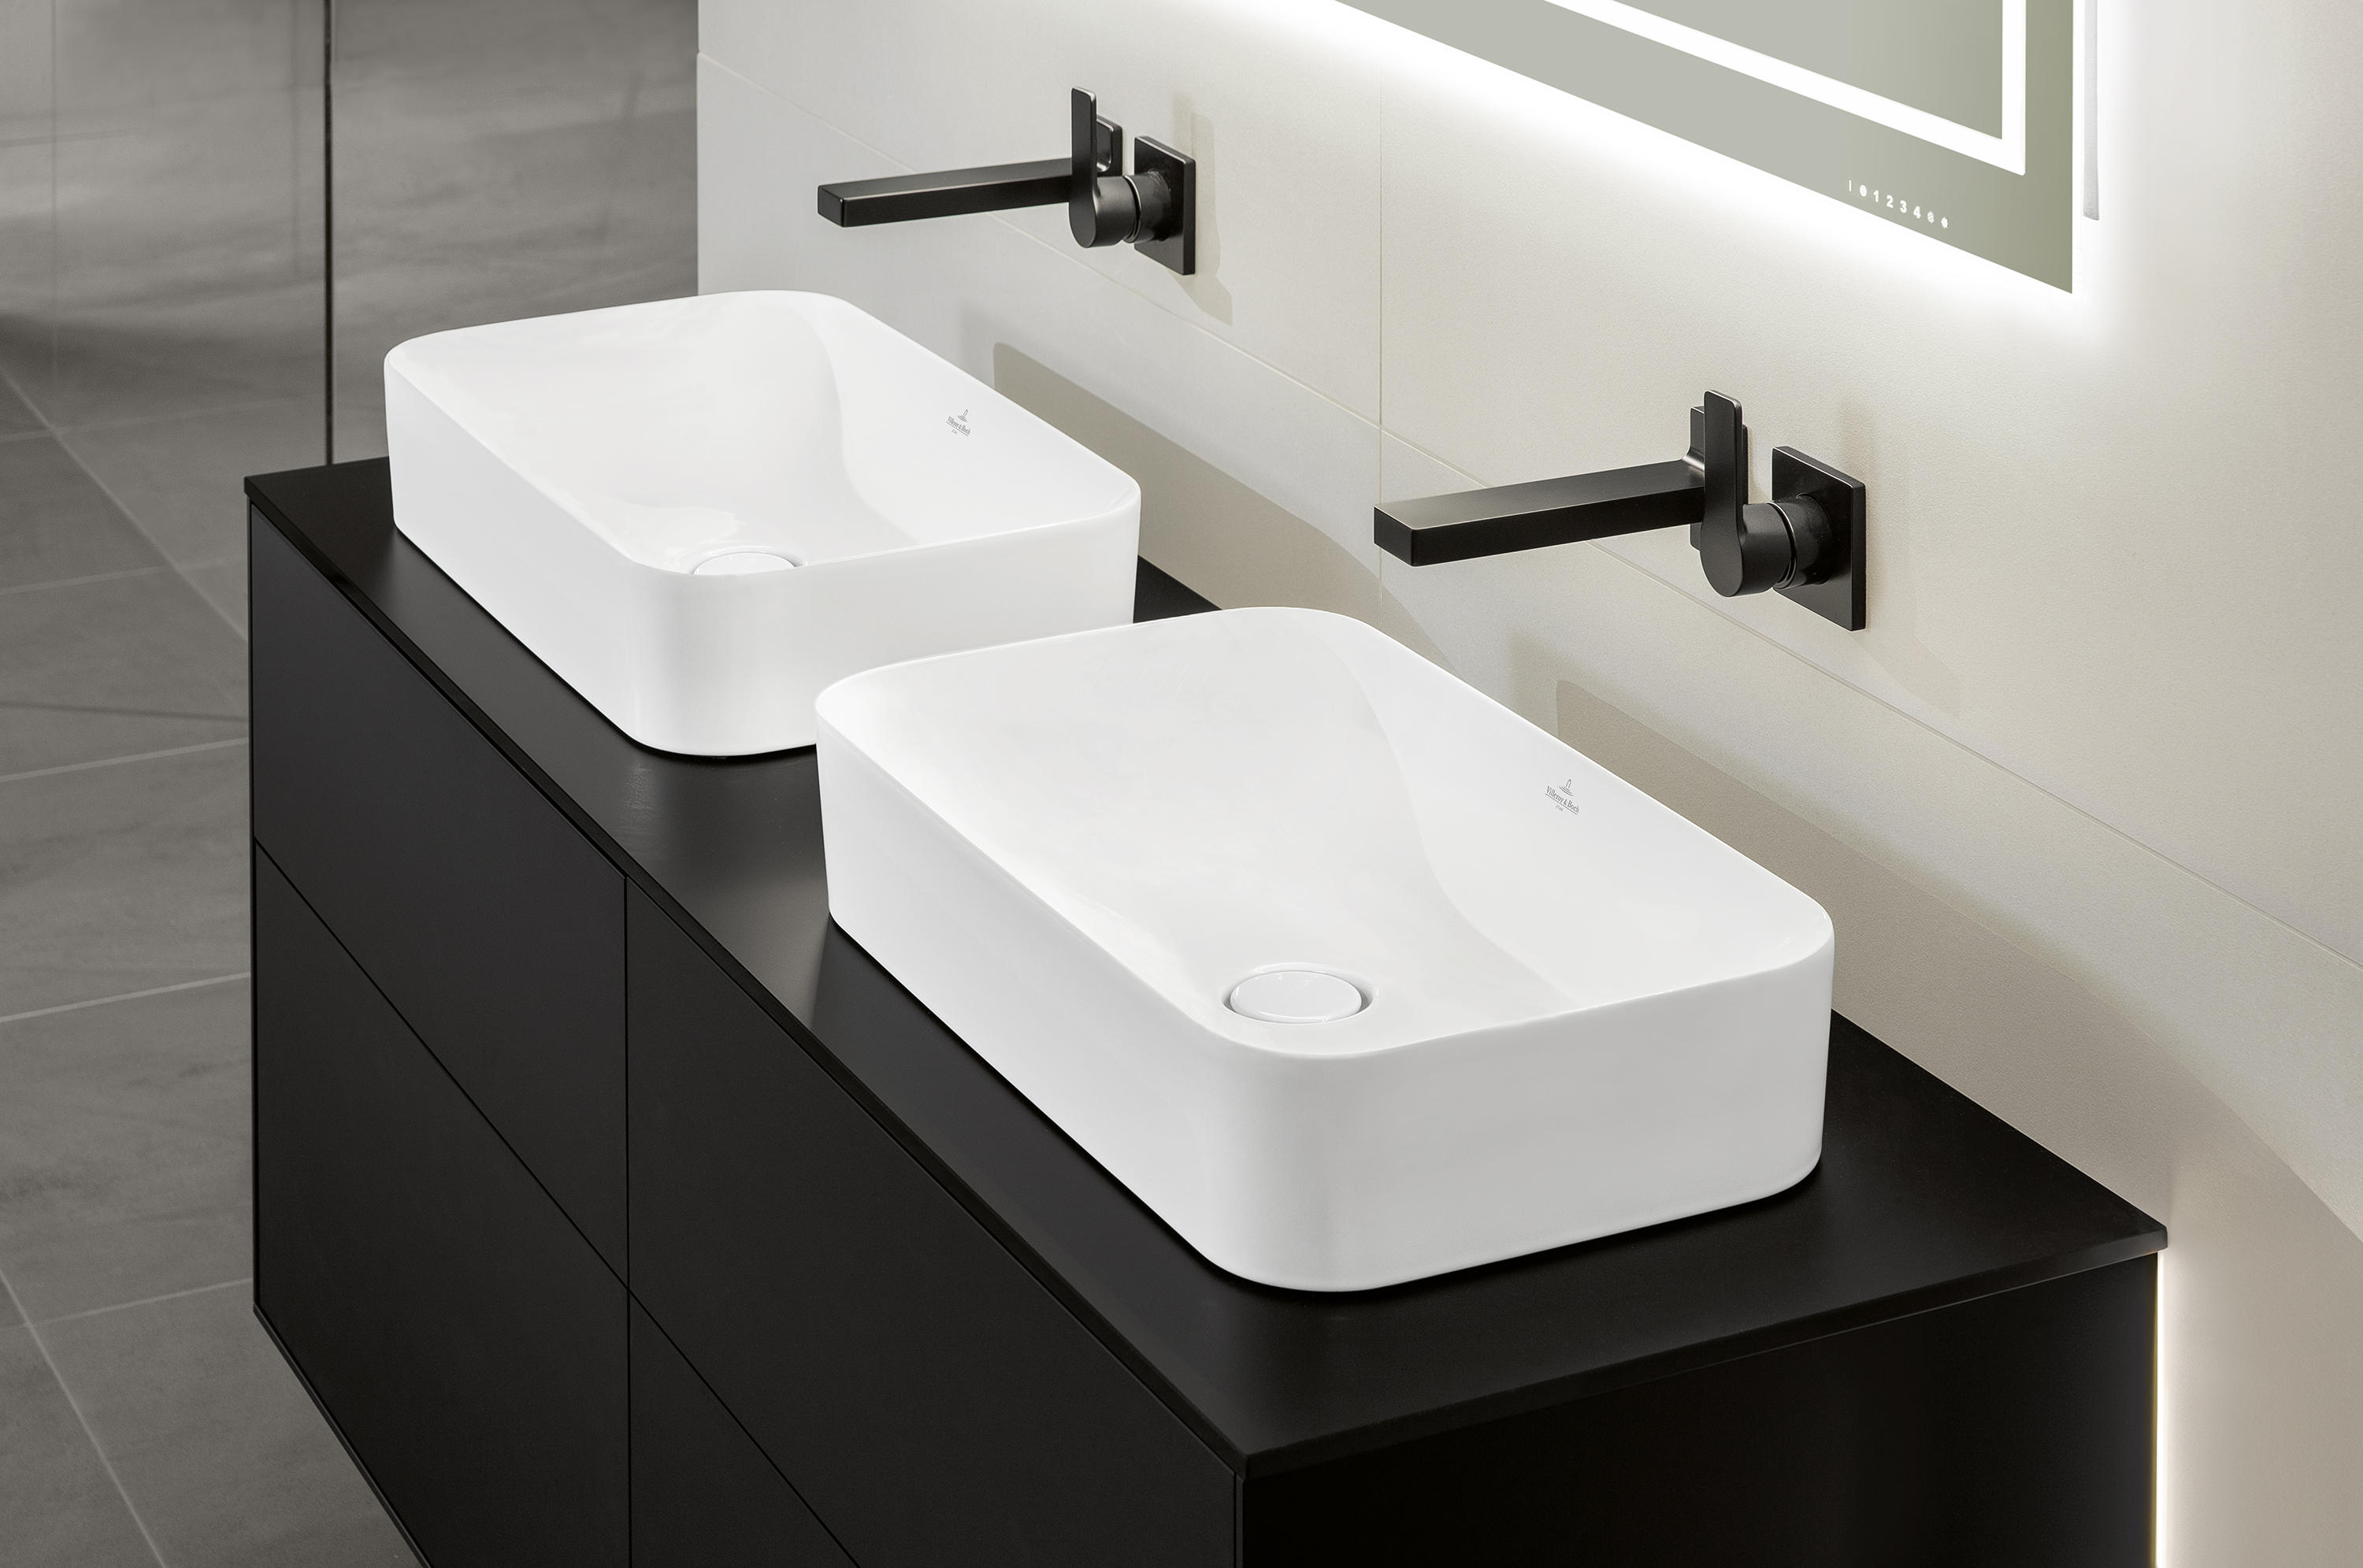 Finion 4139d2 wash basins from villeroy boch architonic - Villeroy and boch ...